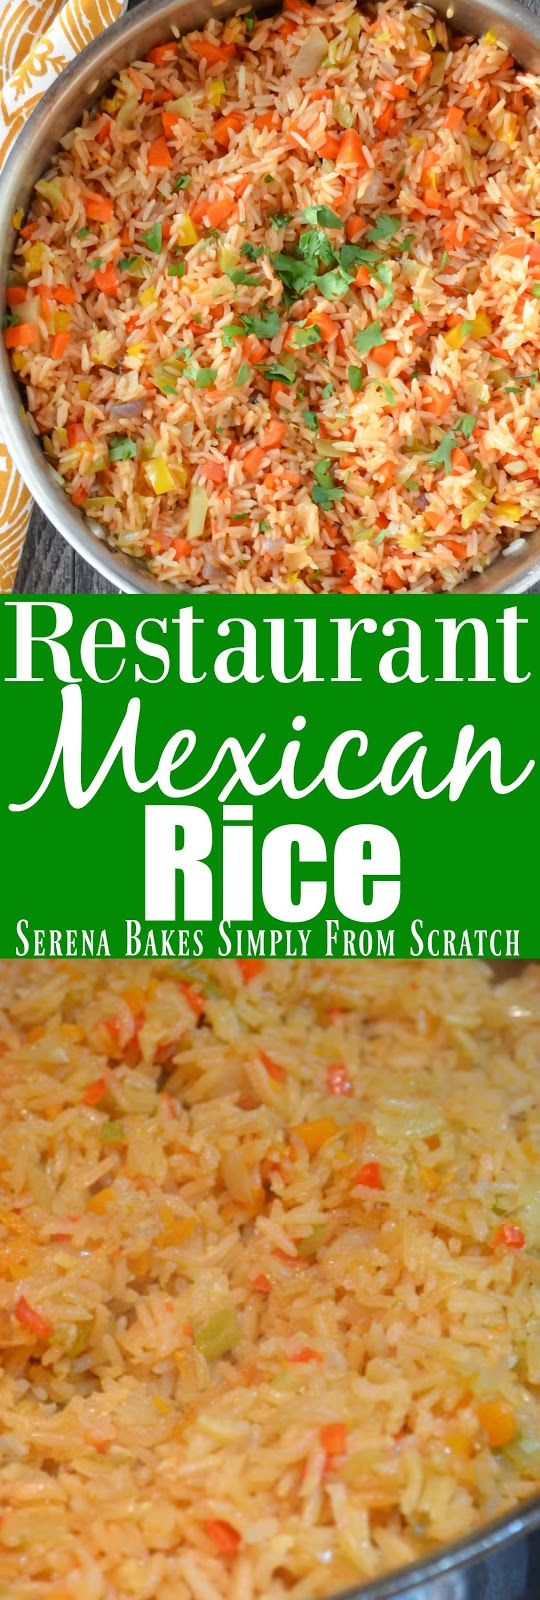 Easy to make Restaurant Style Mexican Rice.